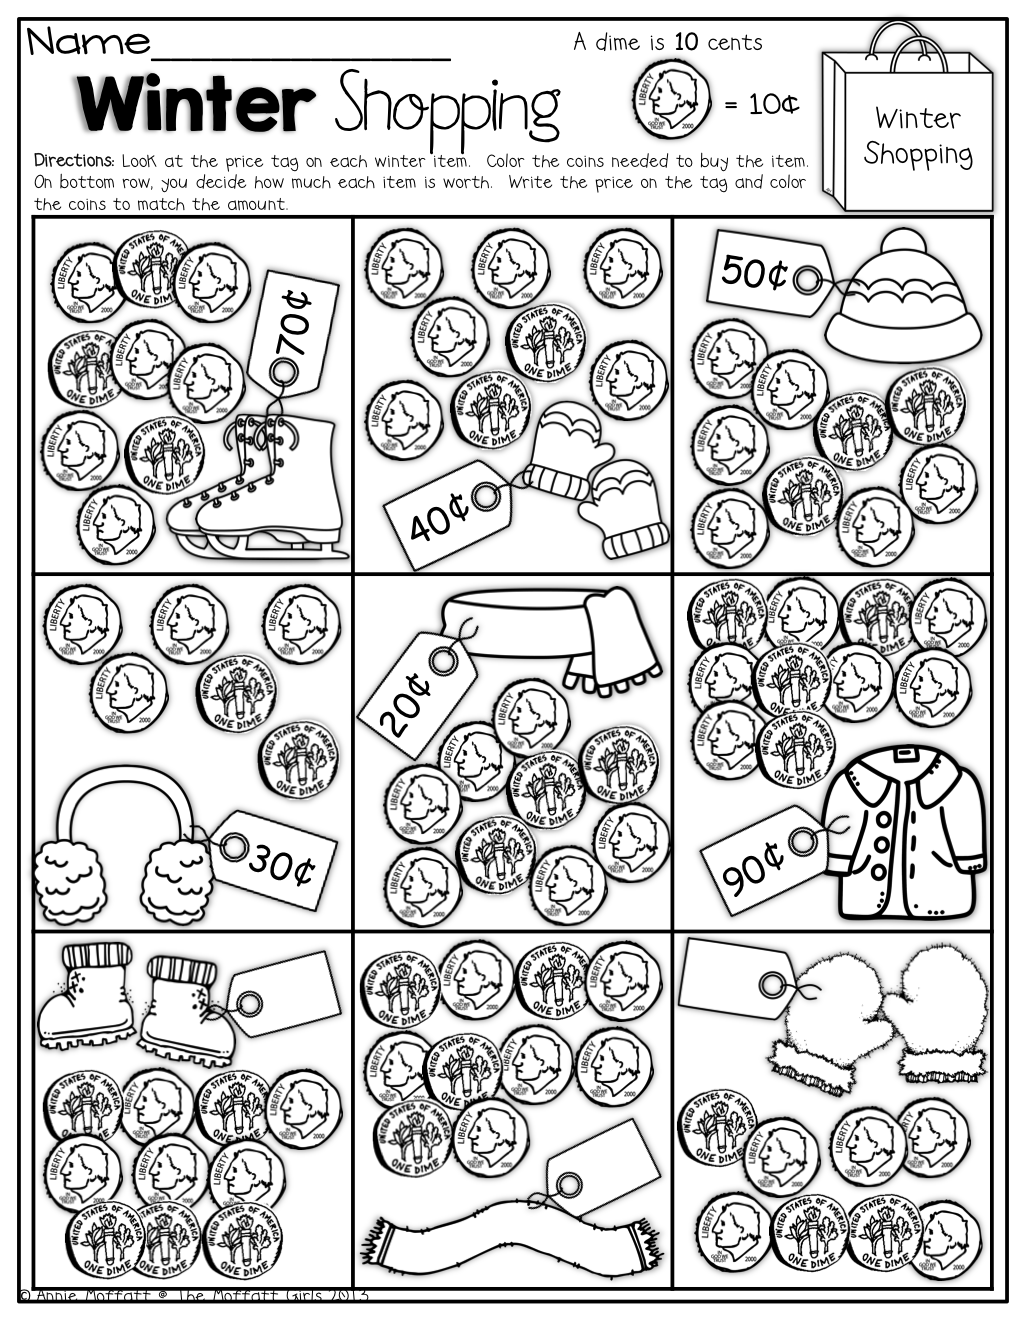 Color the coins needed to buy each item! Fun way to ...